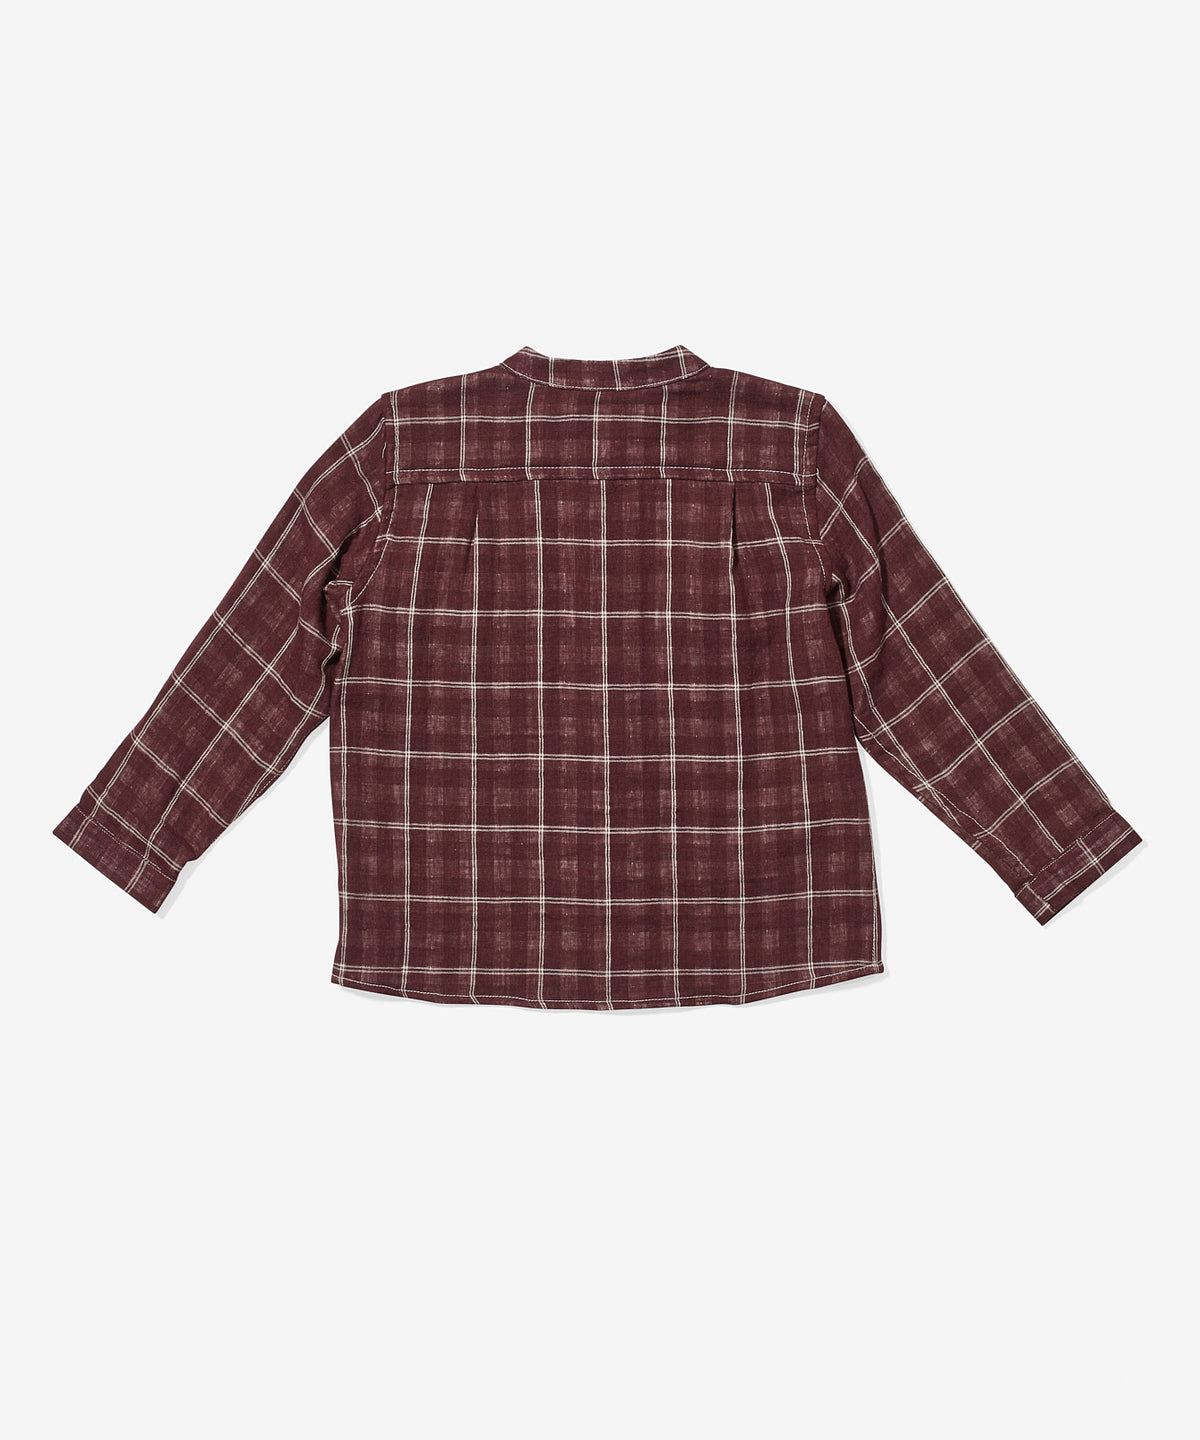 Jack Lee Shirt, Burgundy